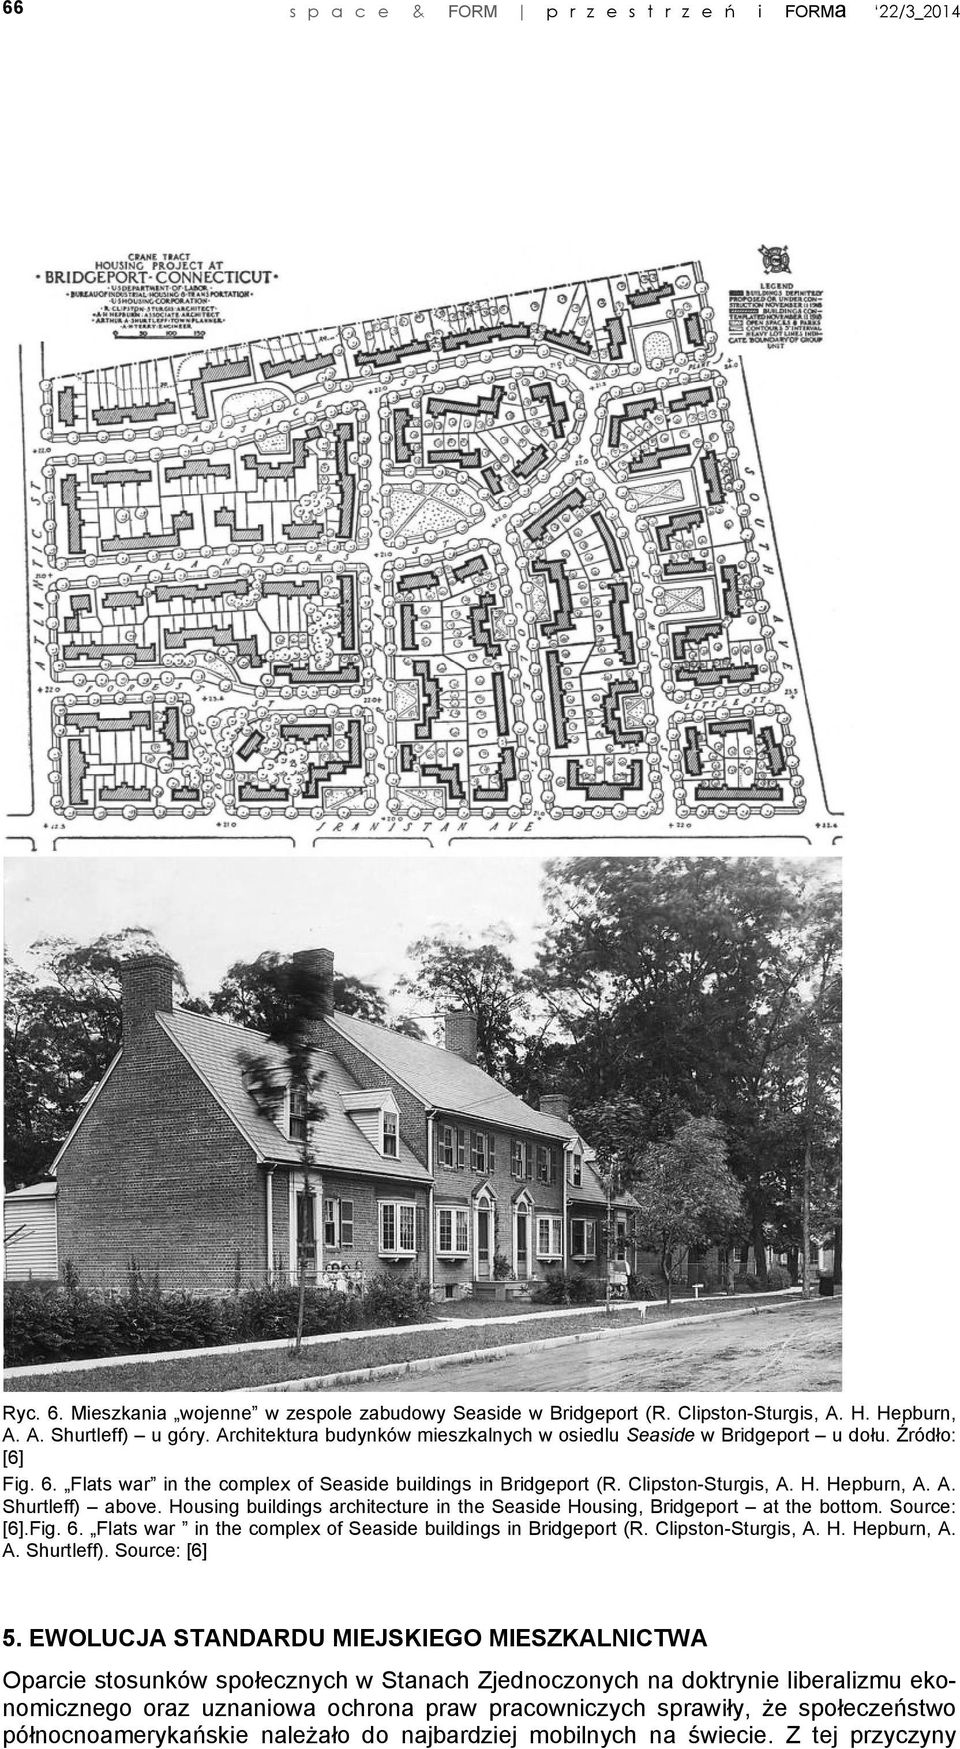 Housing buildings architecture in the Seaside Housing, Bridgeport at the bottom. Source: [6].Fig. 6. Flats war in the complex of Seaside buildings in Bridgeport (R. Clipston-Sturgis, A. H. Hepburn, A.